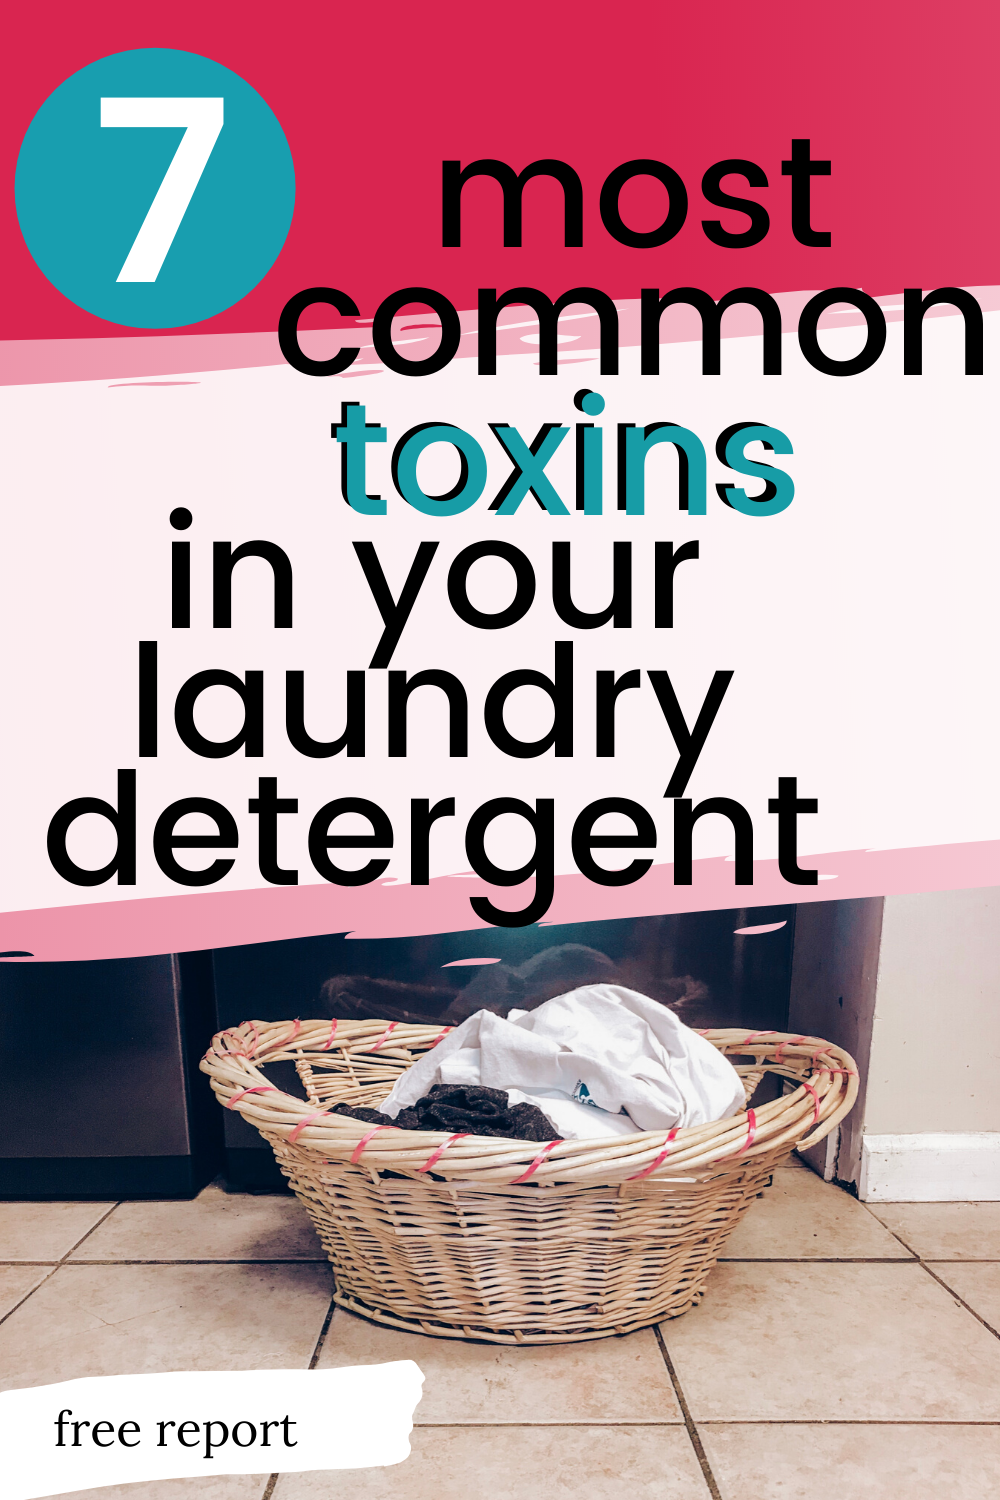 7 Most Common Toxins Hiding In Your Laundry Detergent In 2020 Homemade Laundry Detergent Recipes Laundry Detergent Green Cleaning Solutions